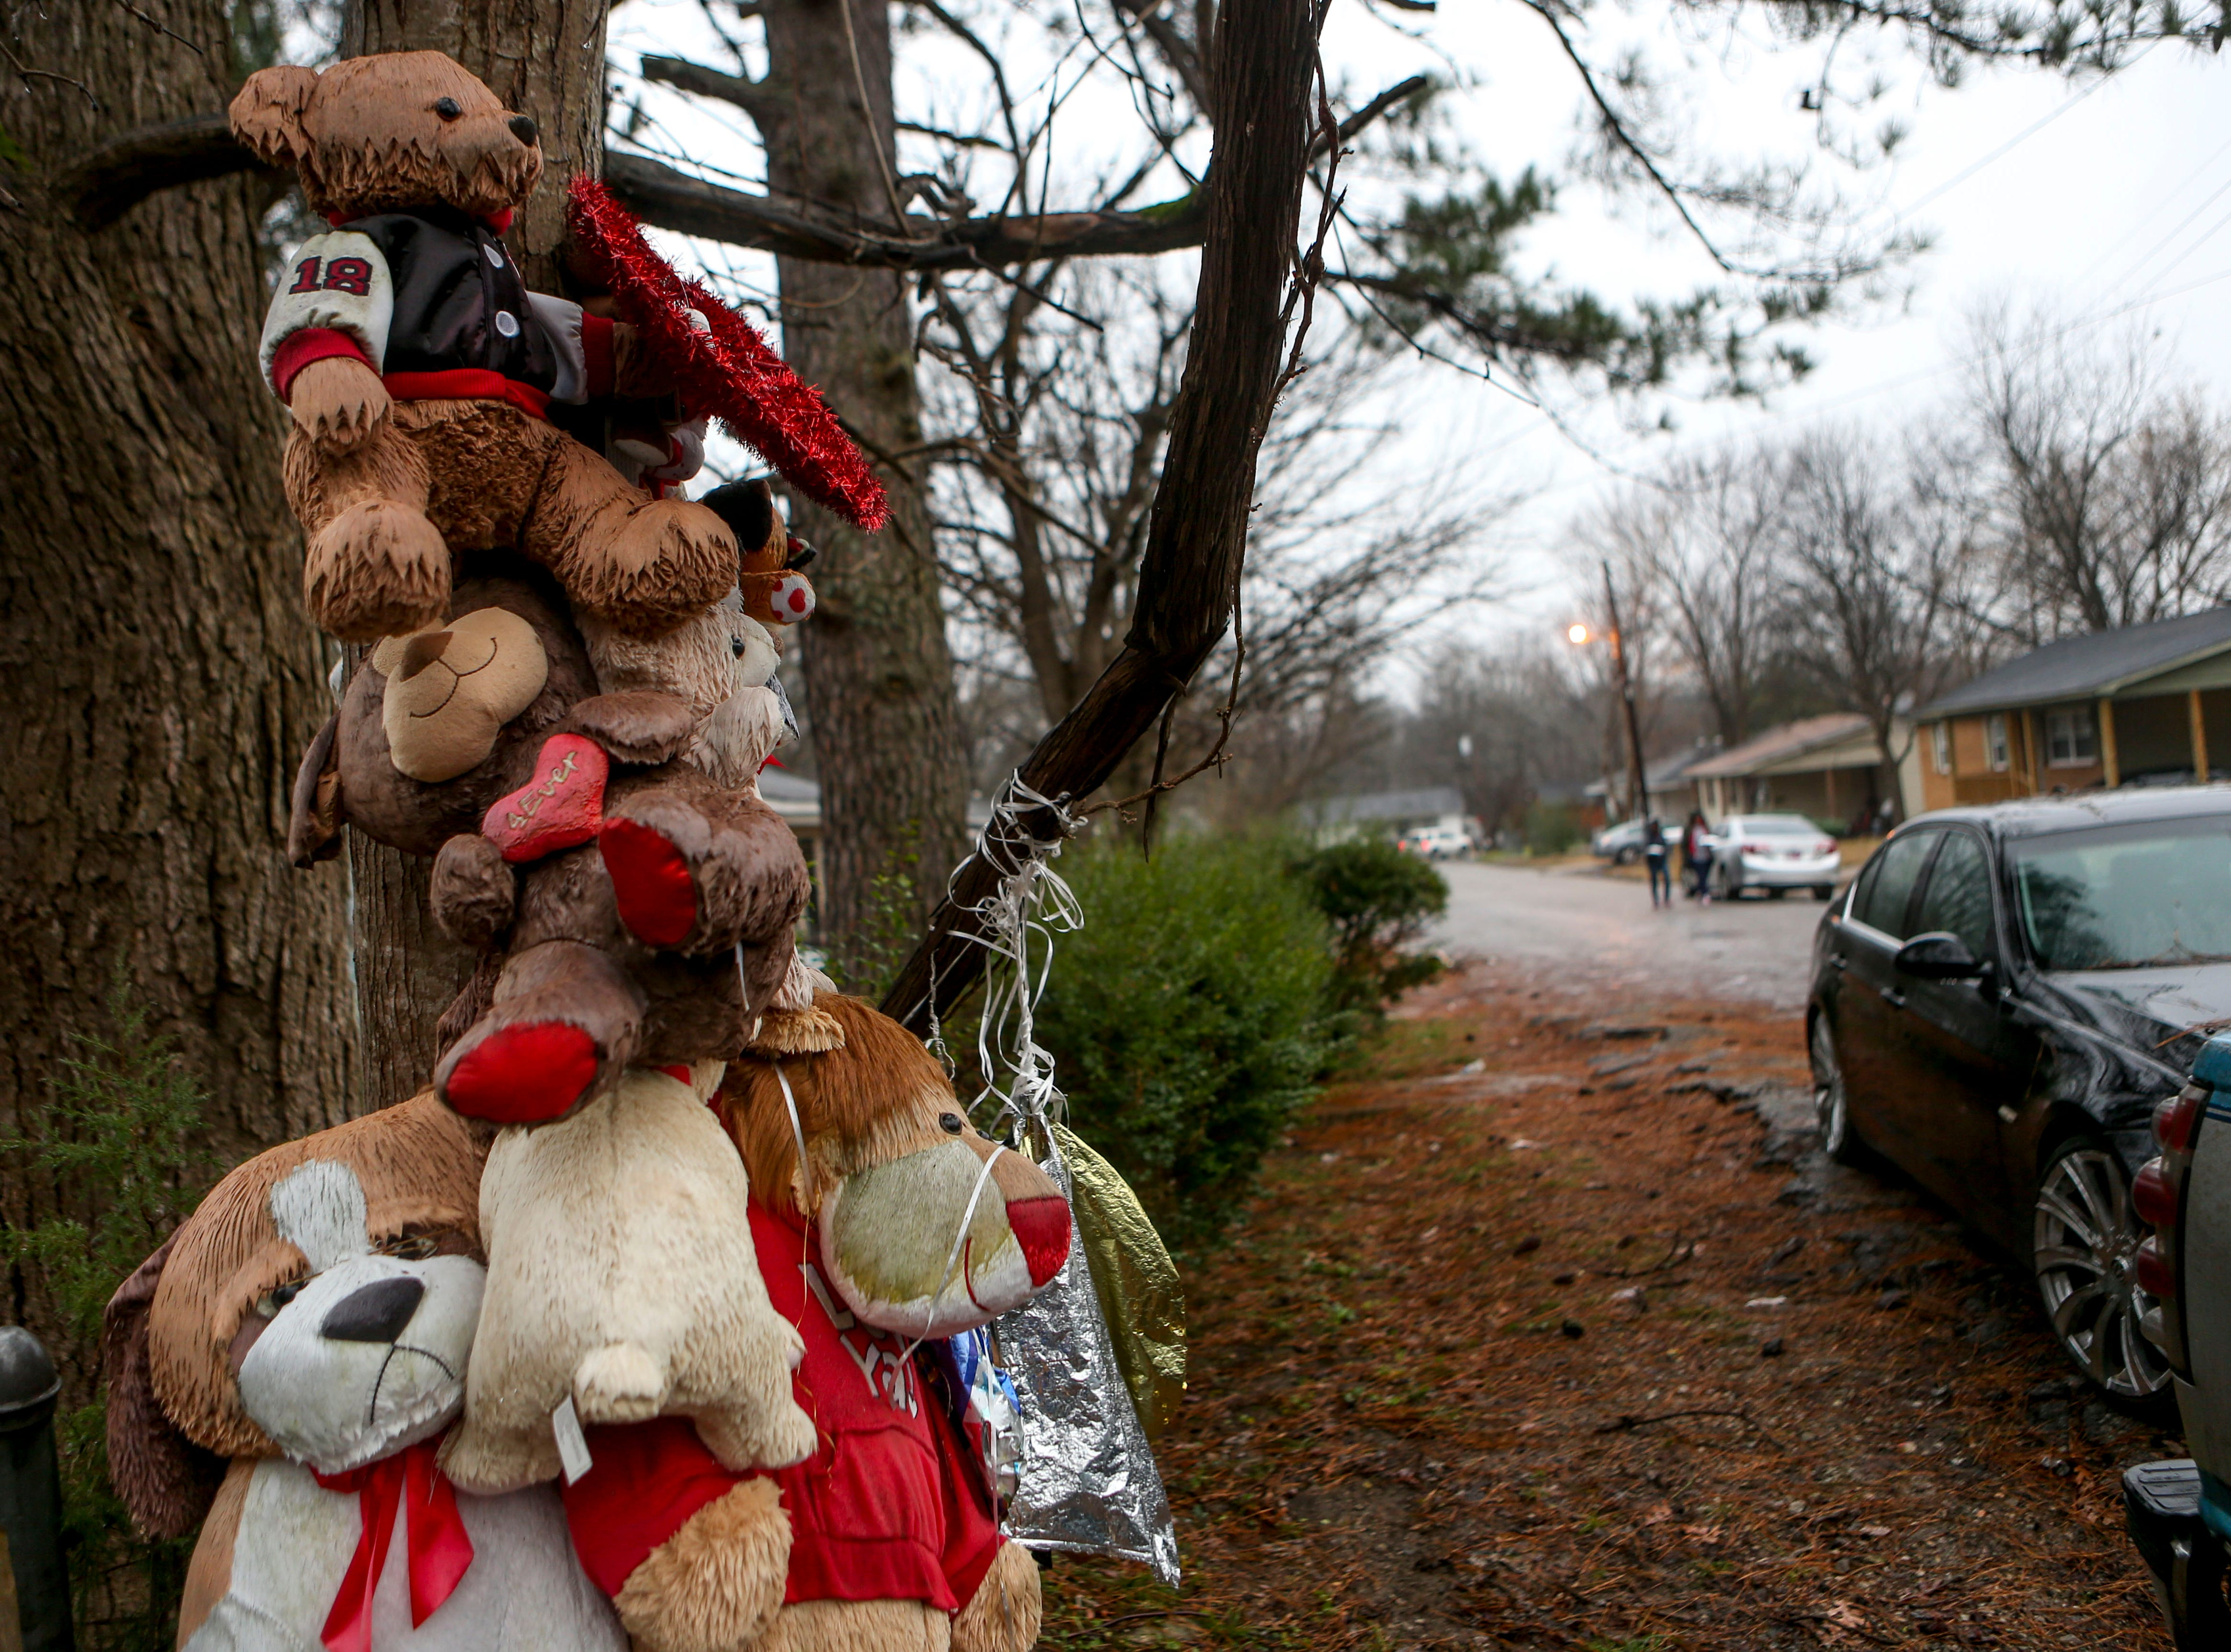 Numerous stuffed animals and ornaments decorate a tree at the location Kentavious Wilson was shot and killed at the previous January at 600 block of Coach Street in Brownsville, Tenn., on Wednesday, Jan. 2, 2019.